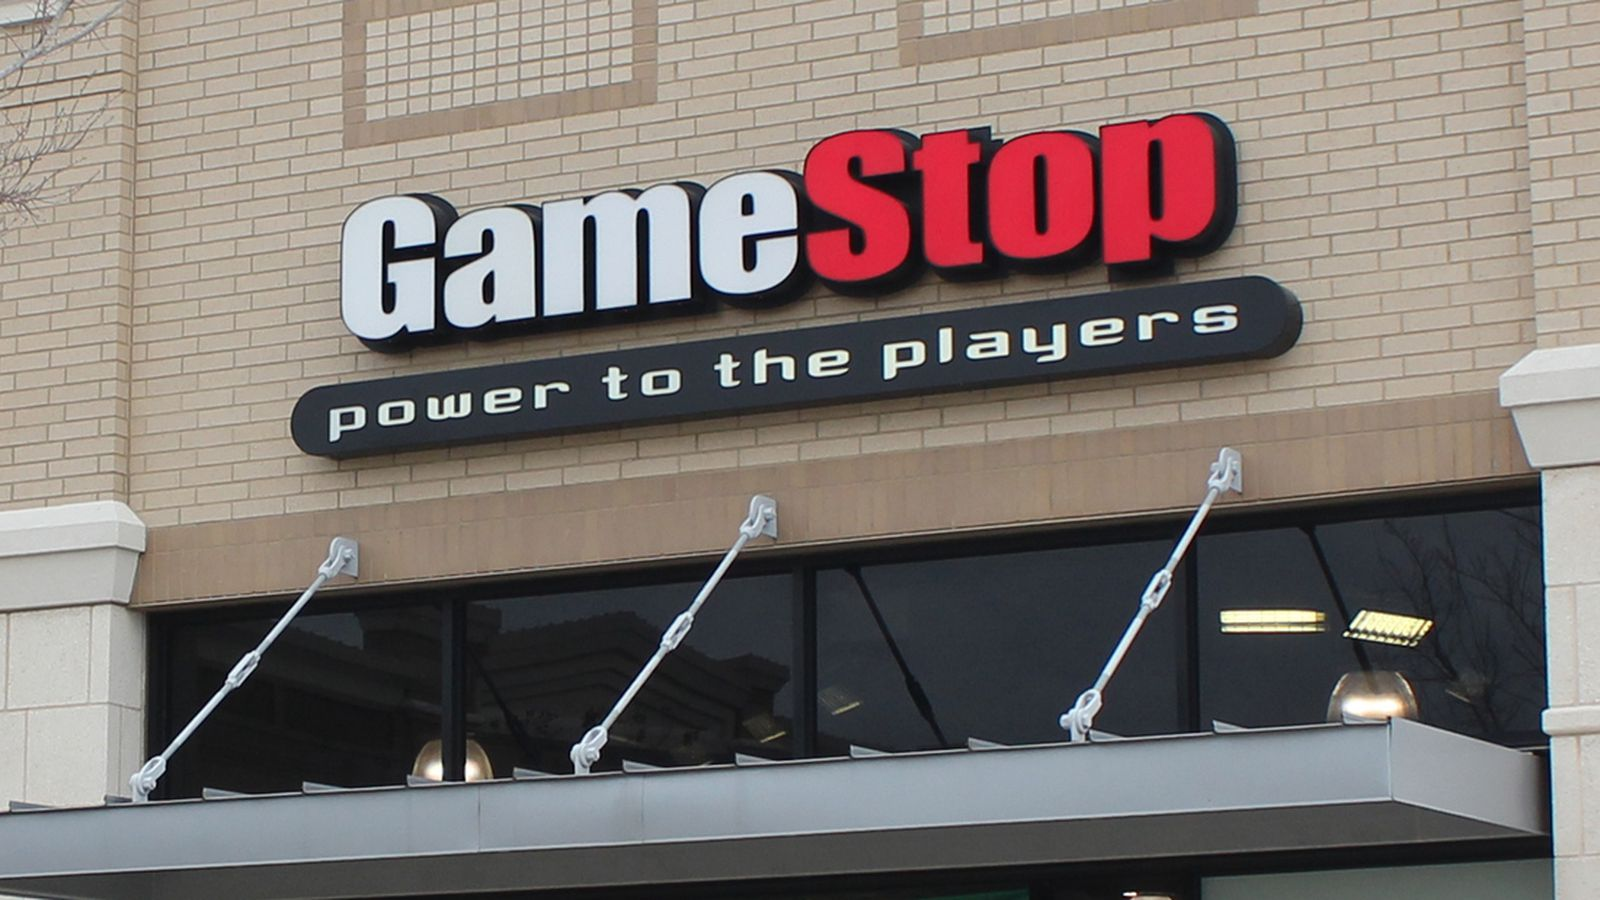 GameStop Trade-ins are the biggest rip off ever?